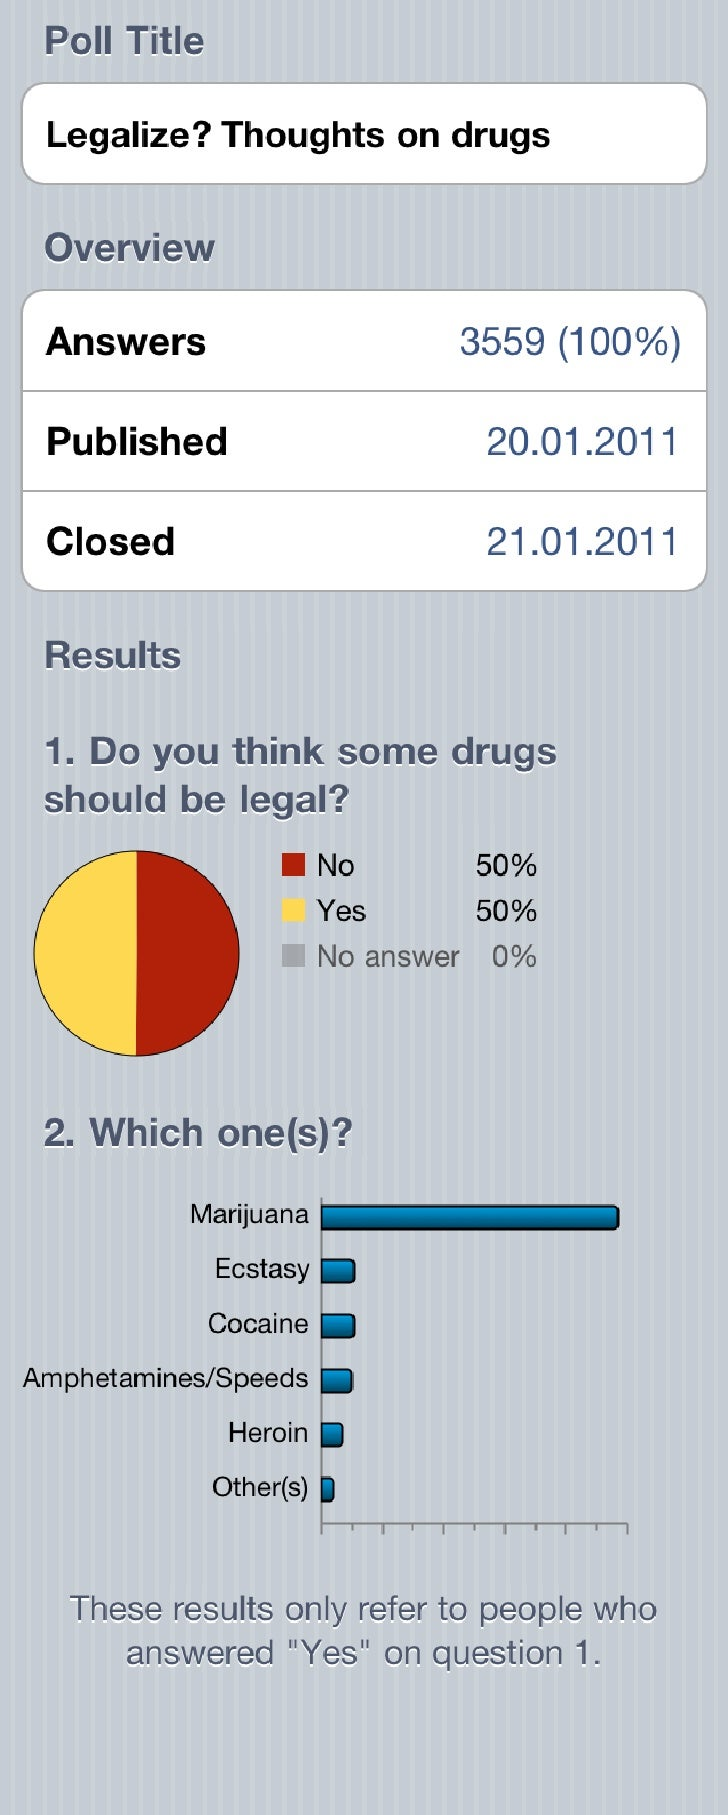 Legalize? Thoughts on Drugs